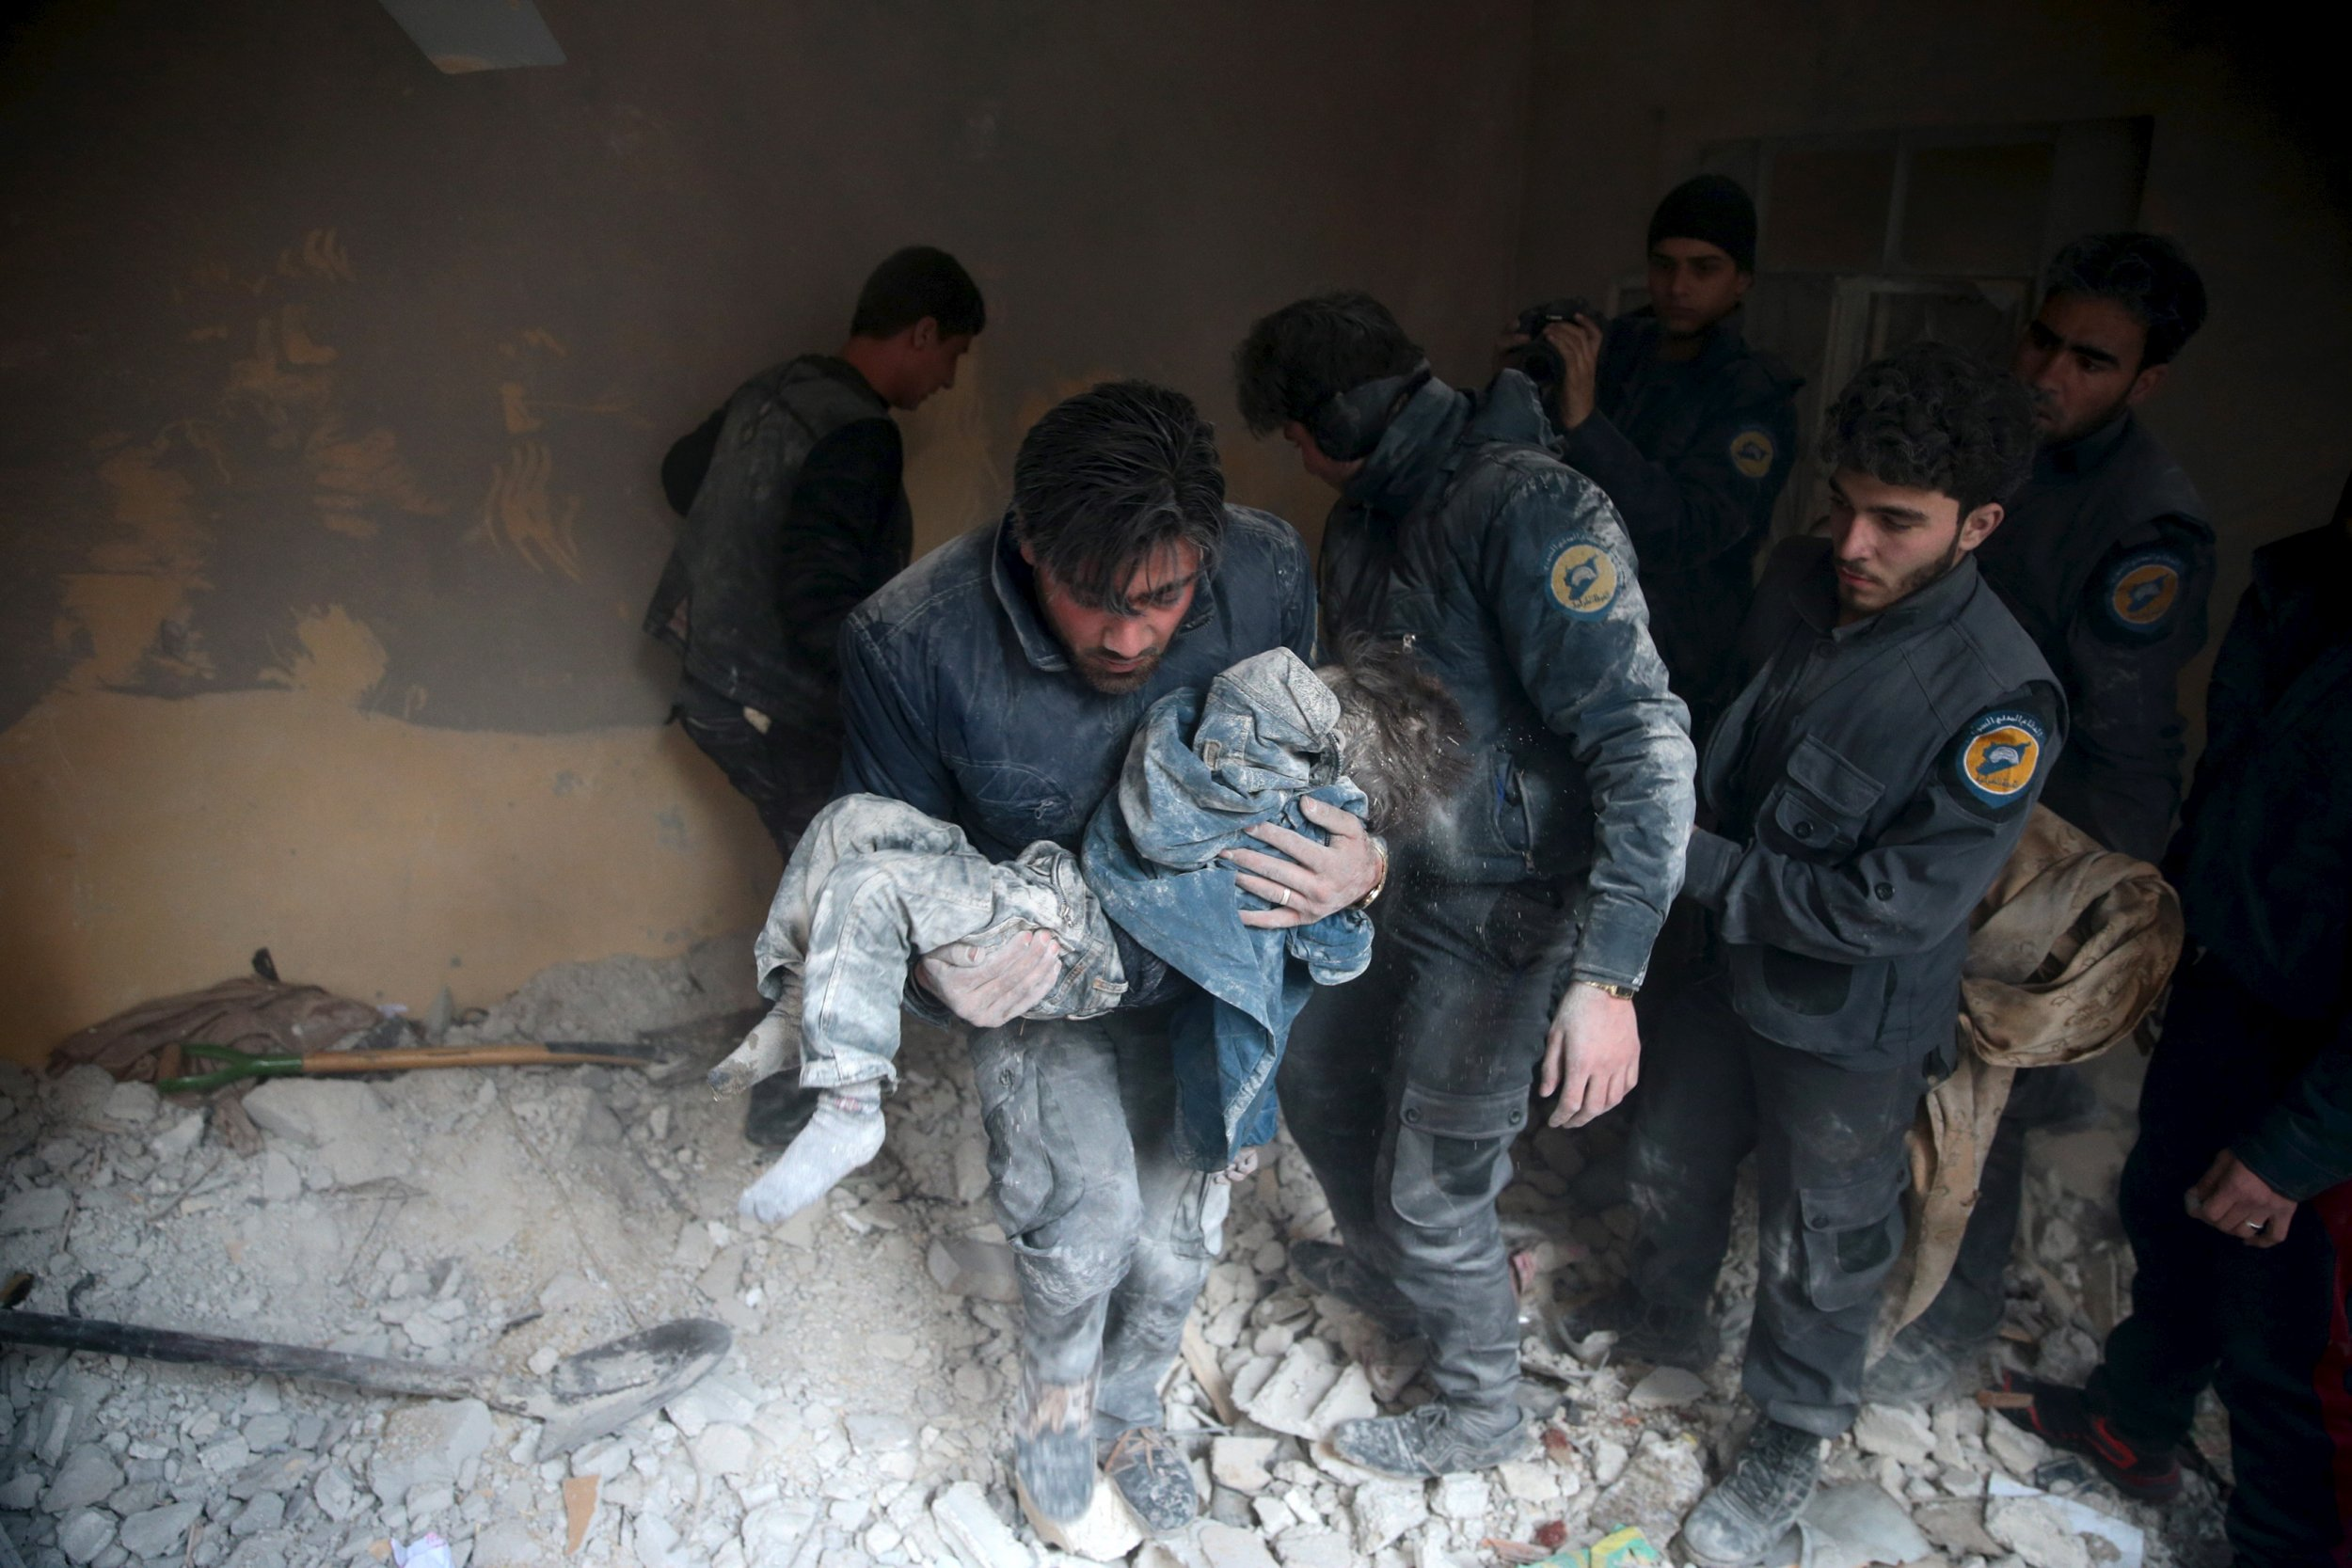 A man carries a child from debris in Damascus after what activists claim was a Russian airstrike.